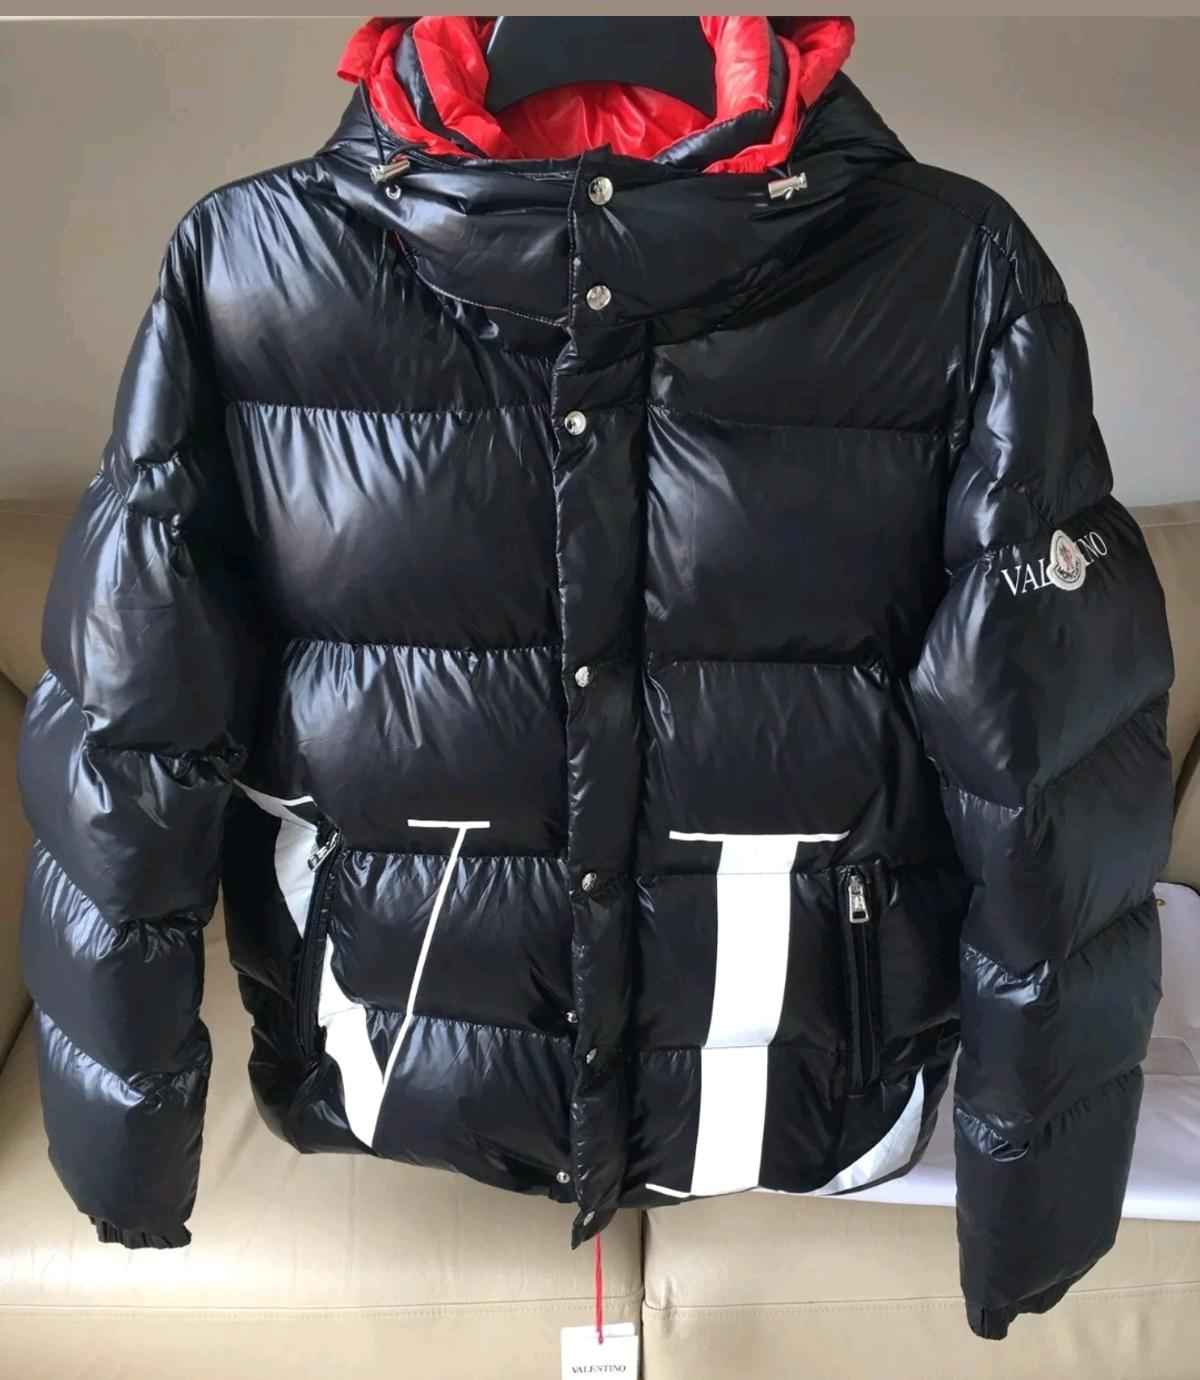 reputable site 16b4f 1325d Moncler X Valentino Collaboration Jacket in E3 London für ...